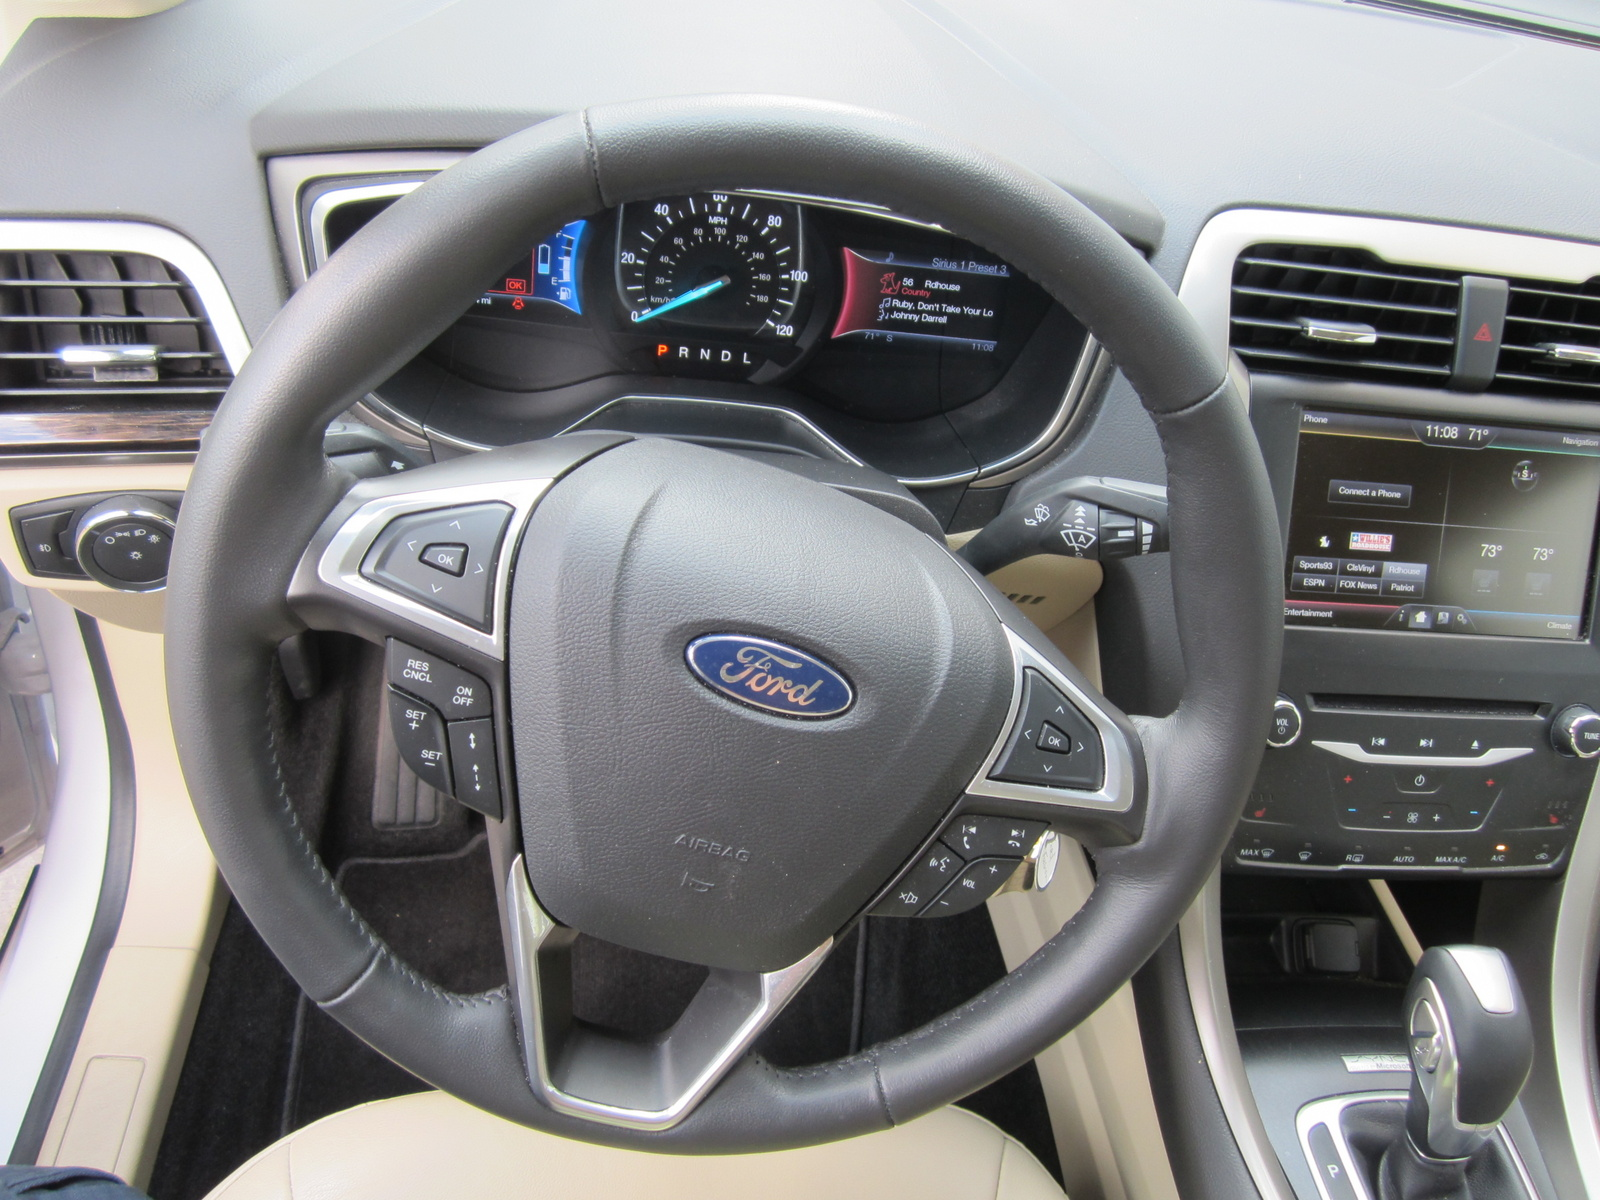 2013 Ford Fusion Interior Pictures Cargurus